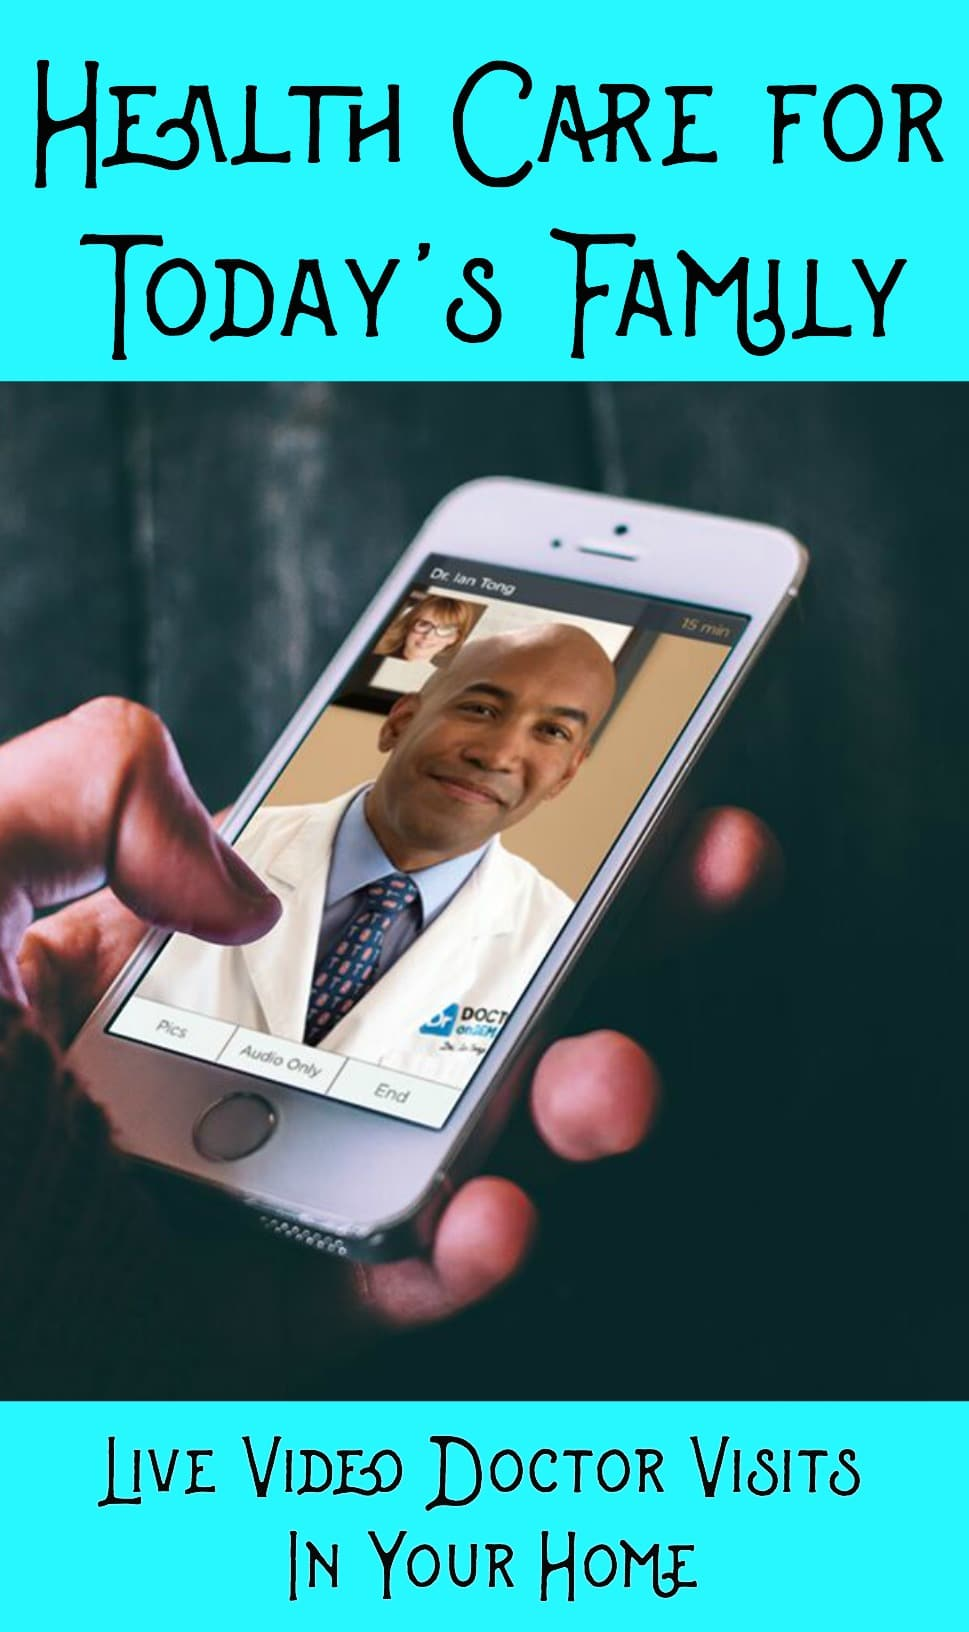 Health care for today's family is better health care so you feel better. You will not believe how simple and affordable live video doctor visits can be!